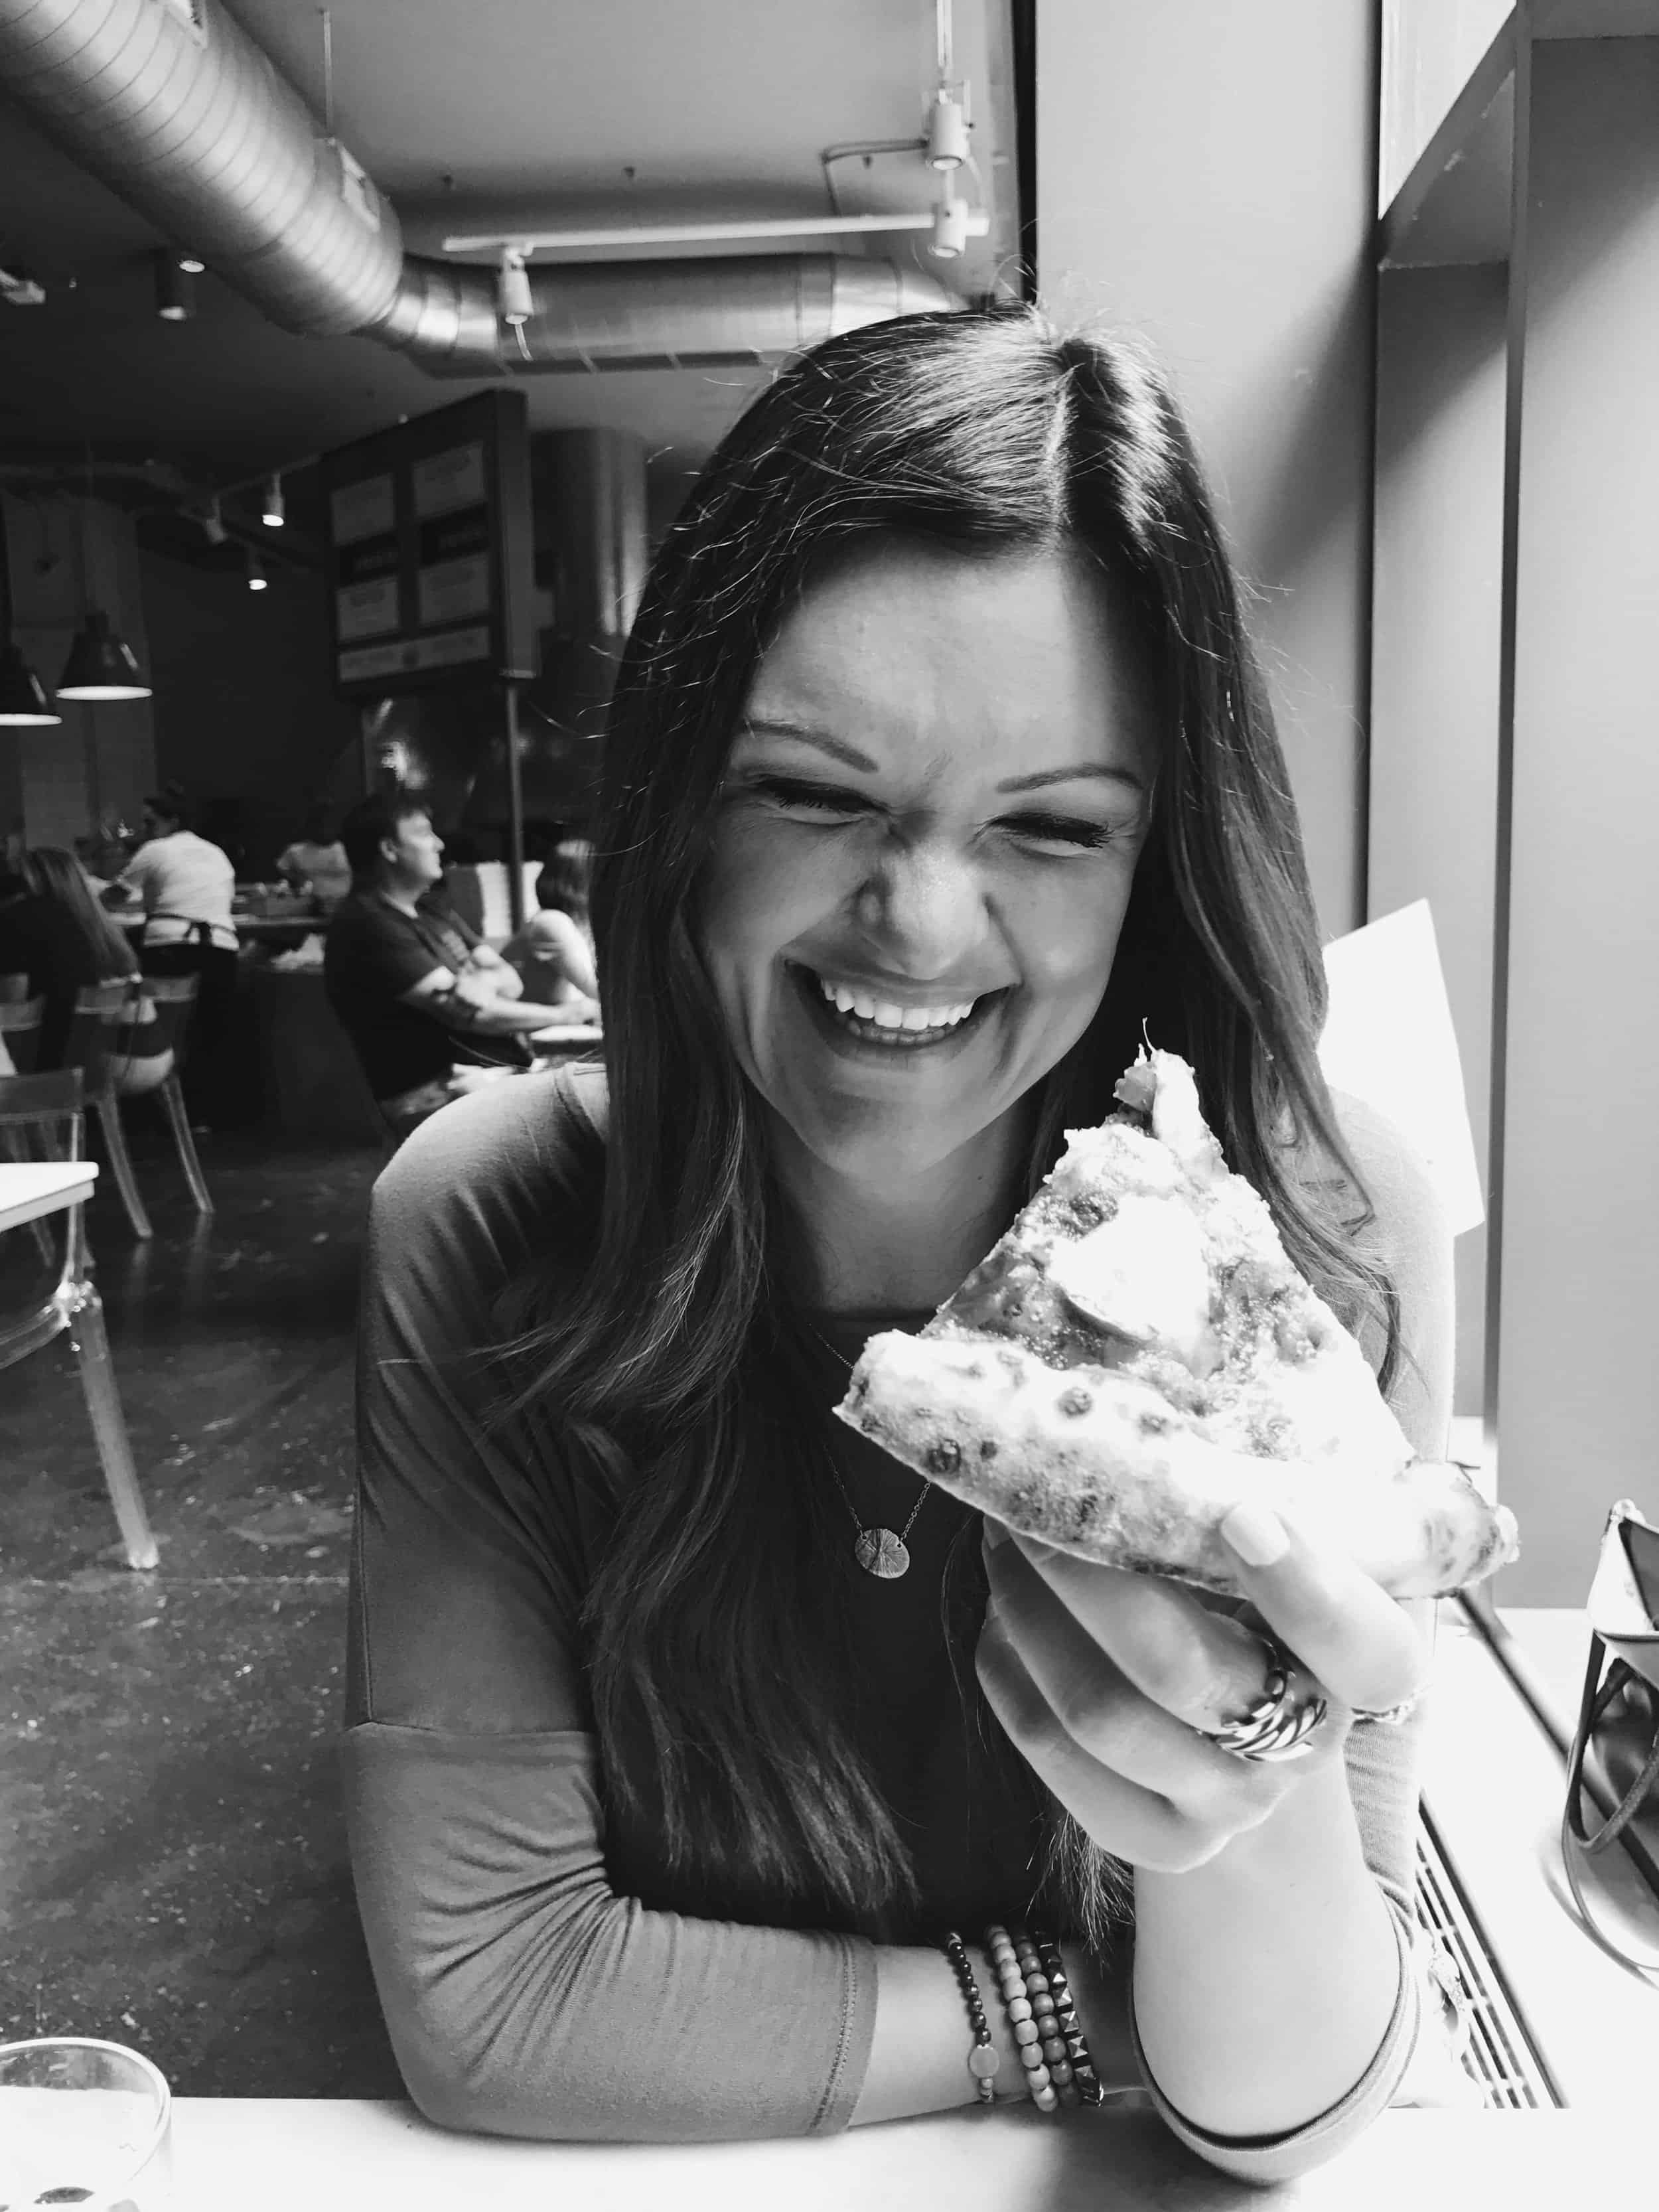 LOOK at how happy this pizza made me.